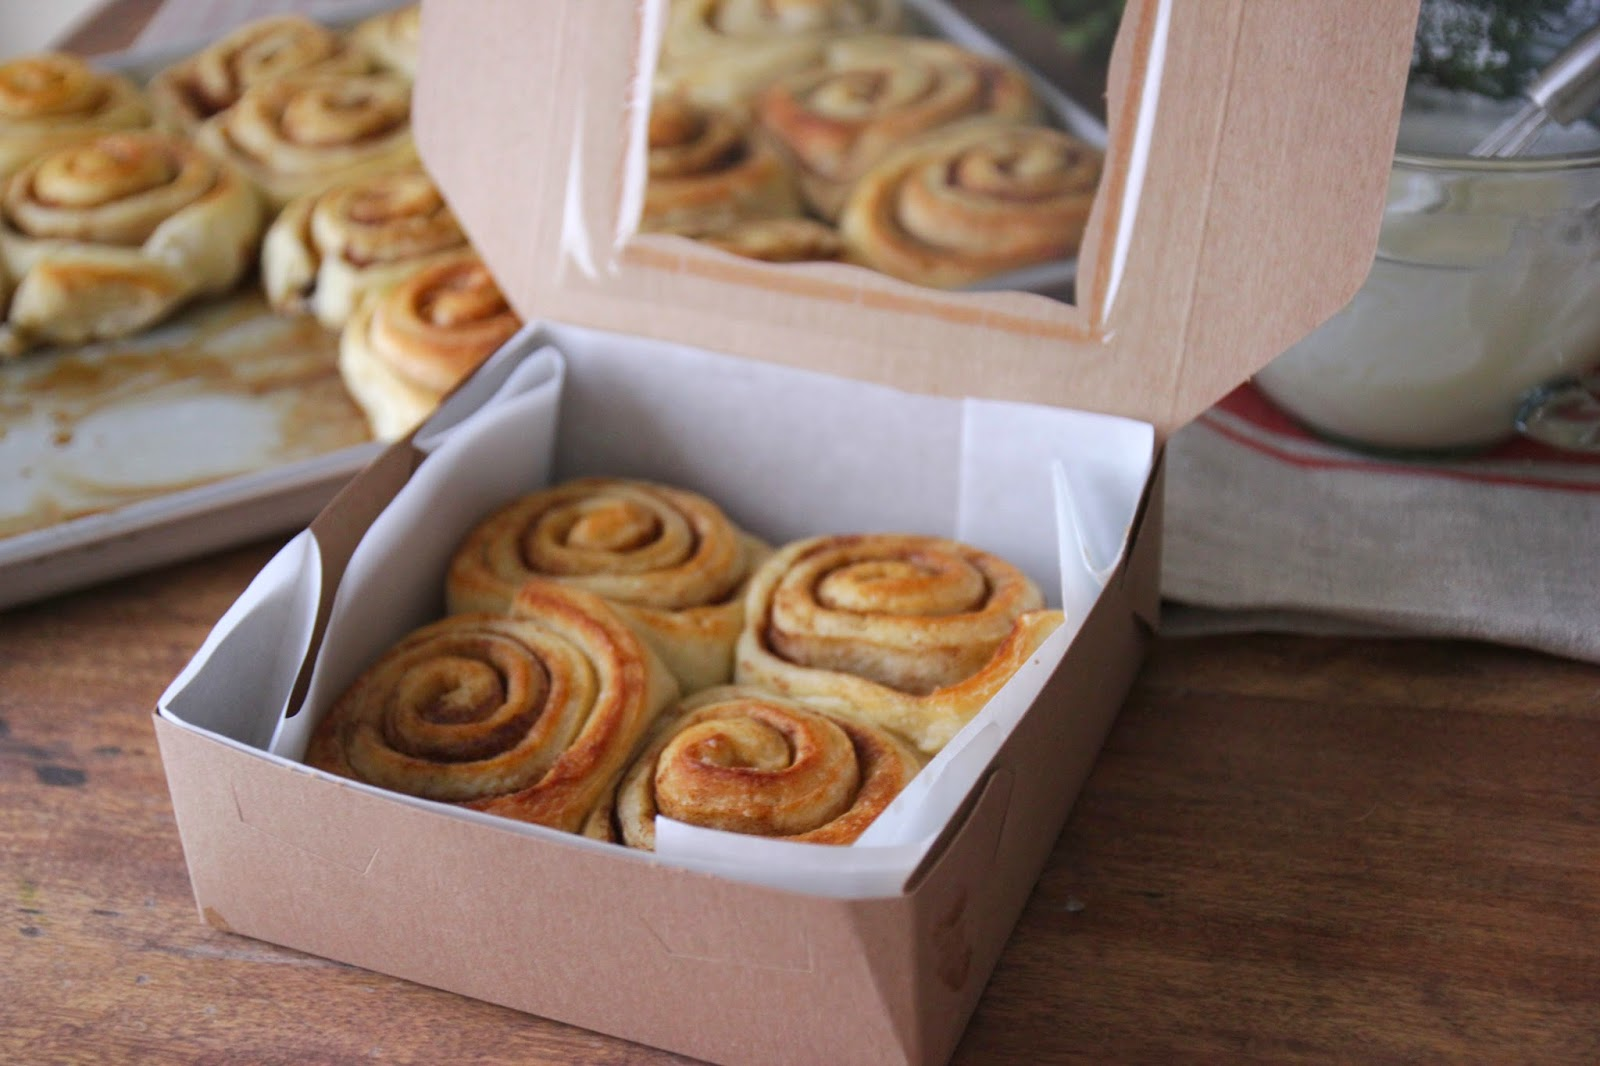 Jenny Steffens Hobick Quot Homemade Quot Cinnamon Roll Gifts